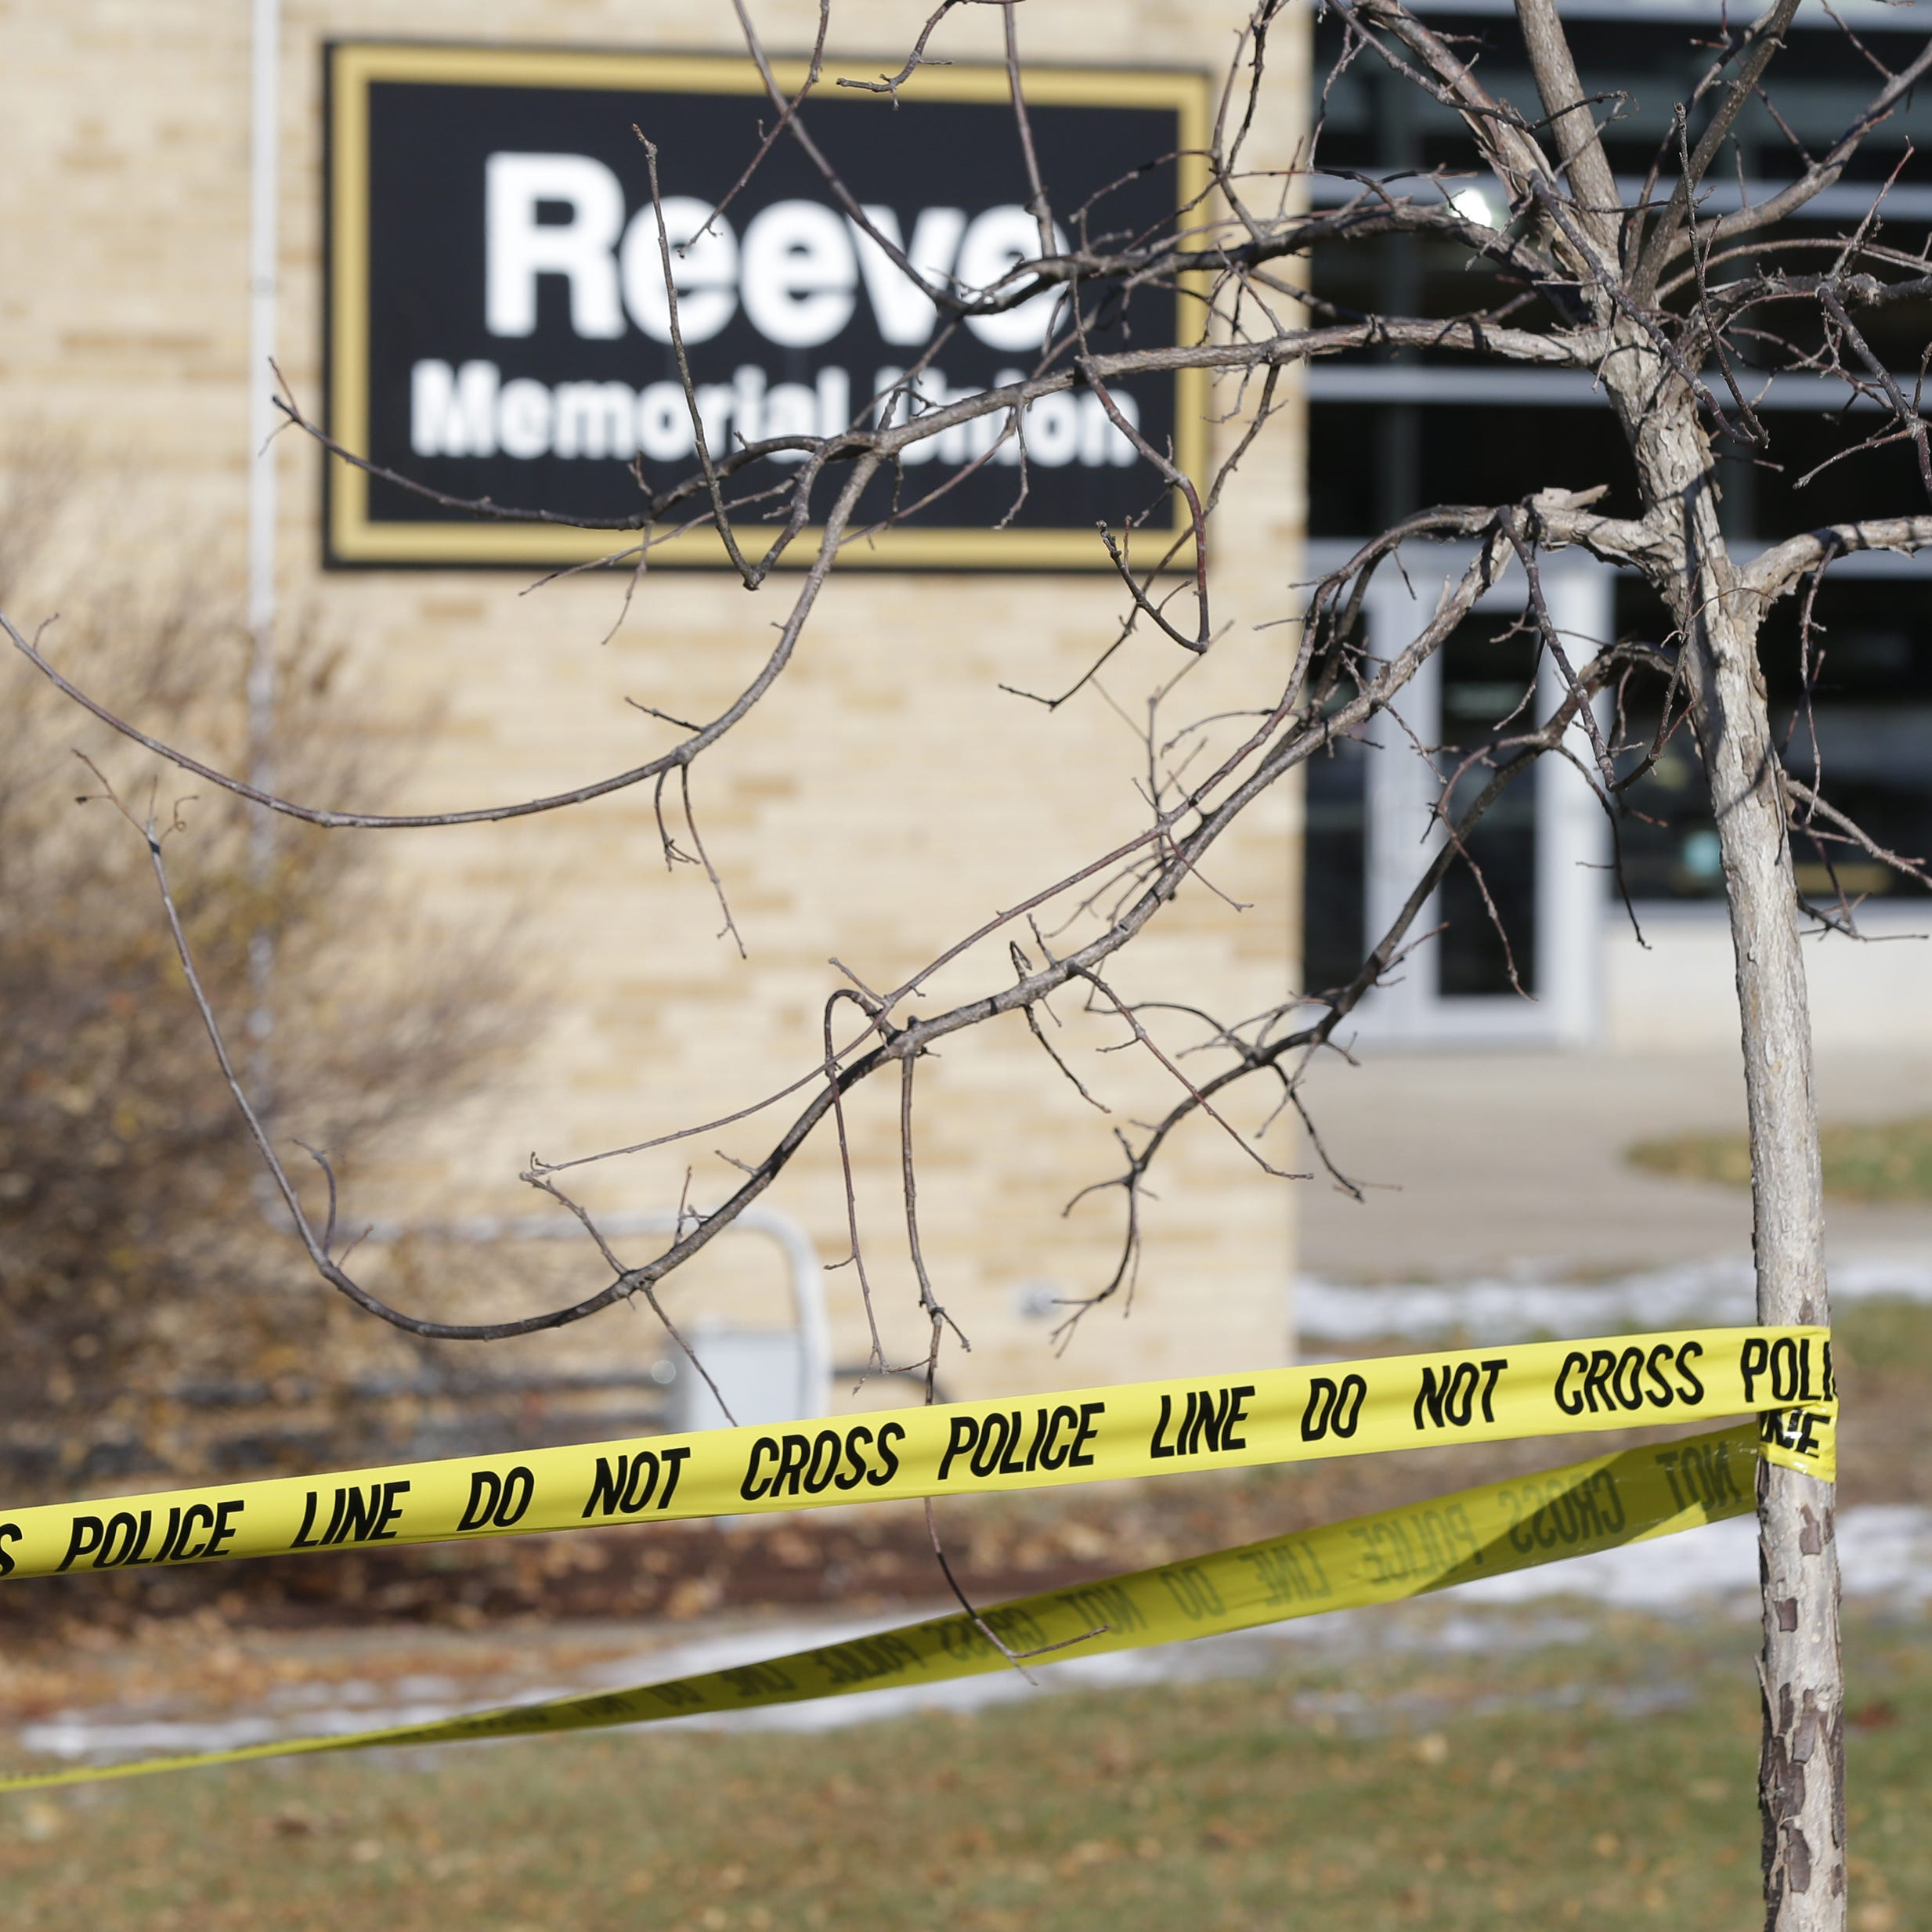 UWO armed robbery: Statewide search underway for men who robbed courier near Reeve Union